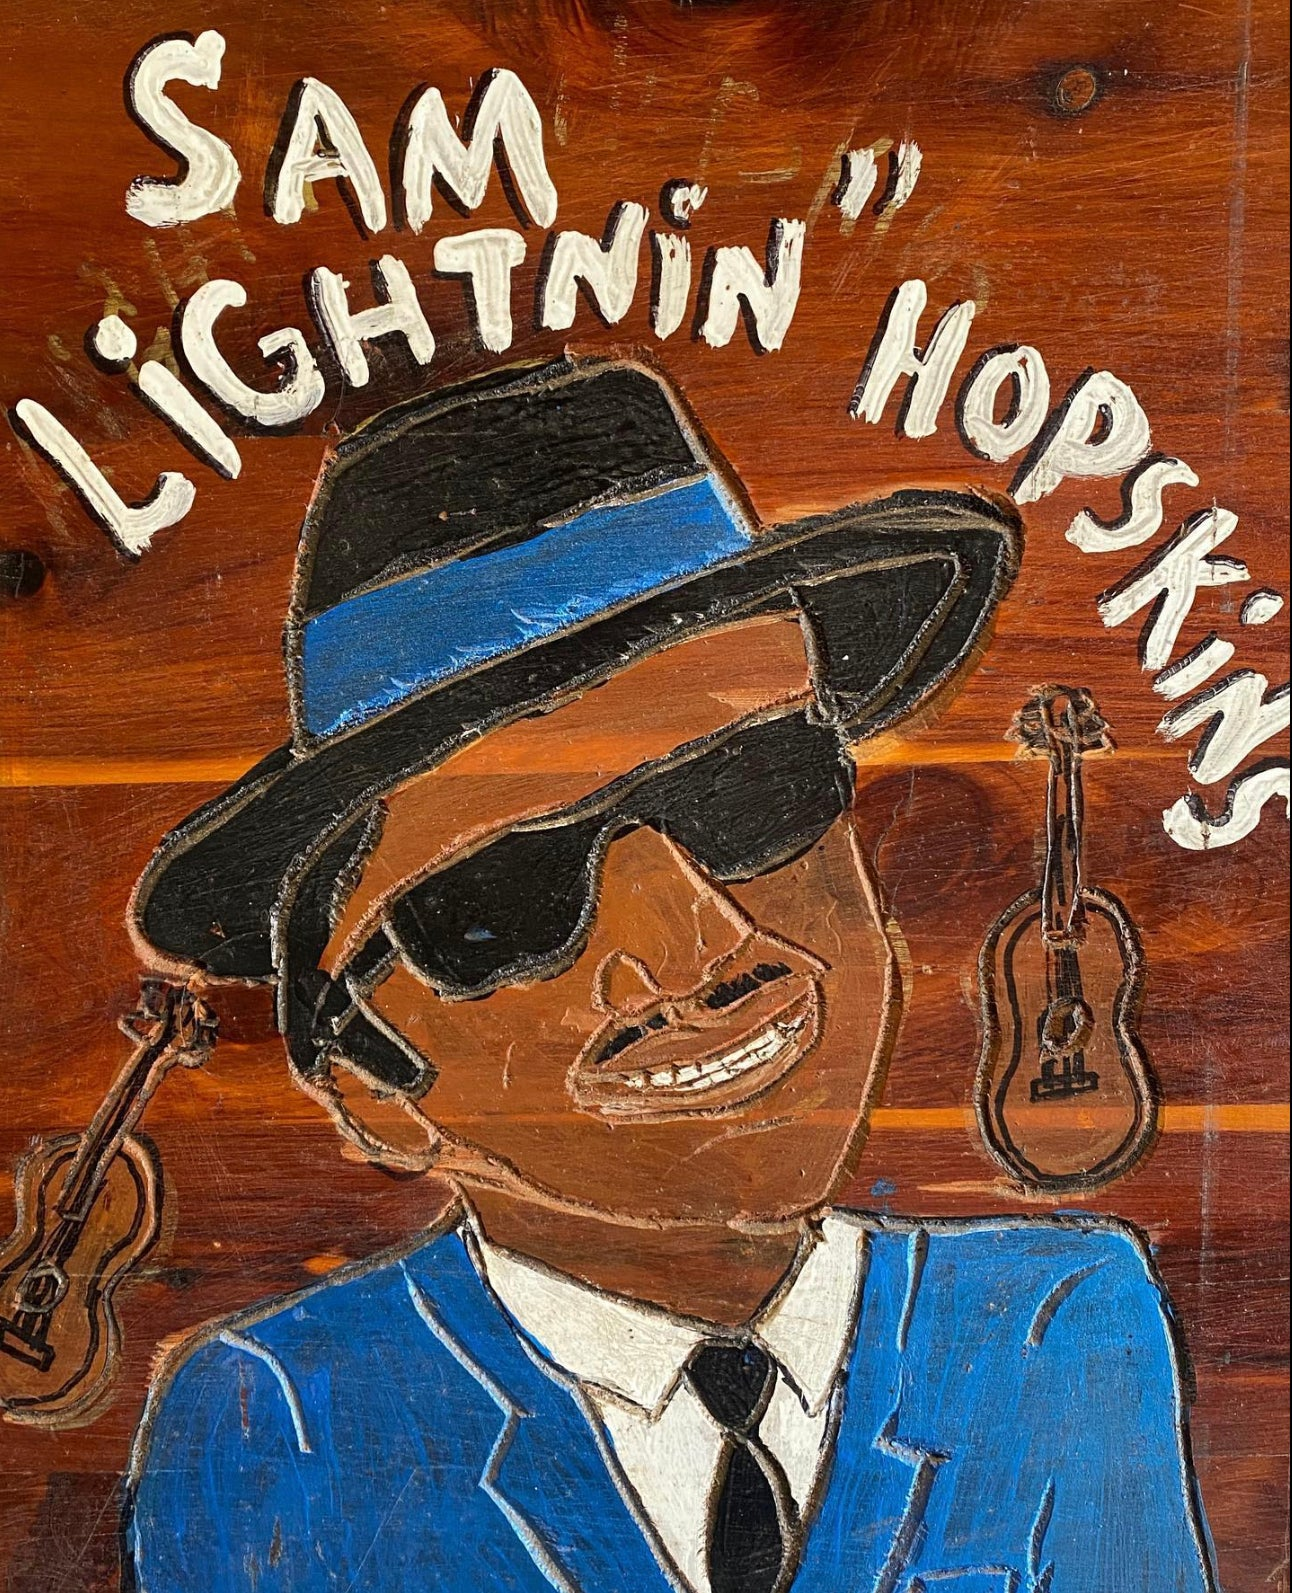 """Sam Lightnin Hopkins"" by Charles Gillam"